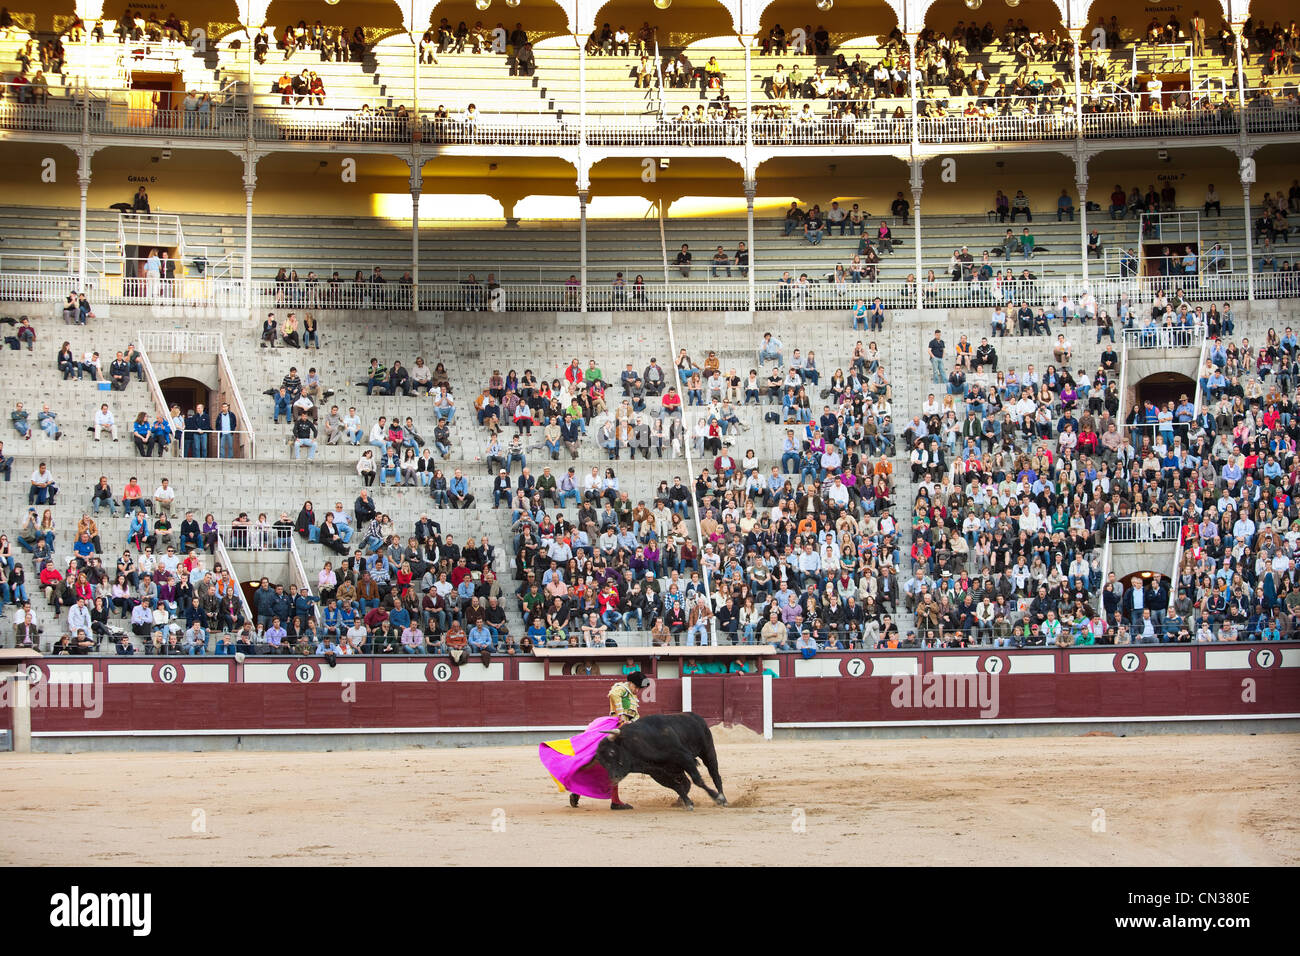 Bullfighter with bull in Las Ventas bullring with audience, Madrid - Stock Image